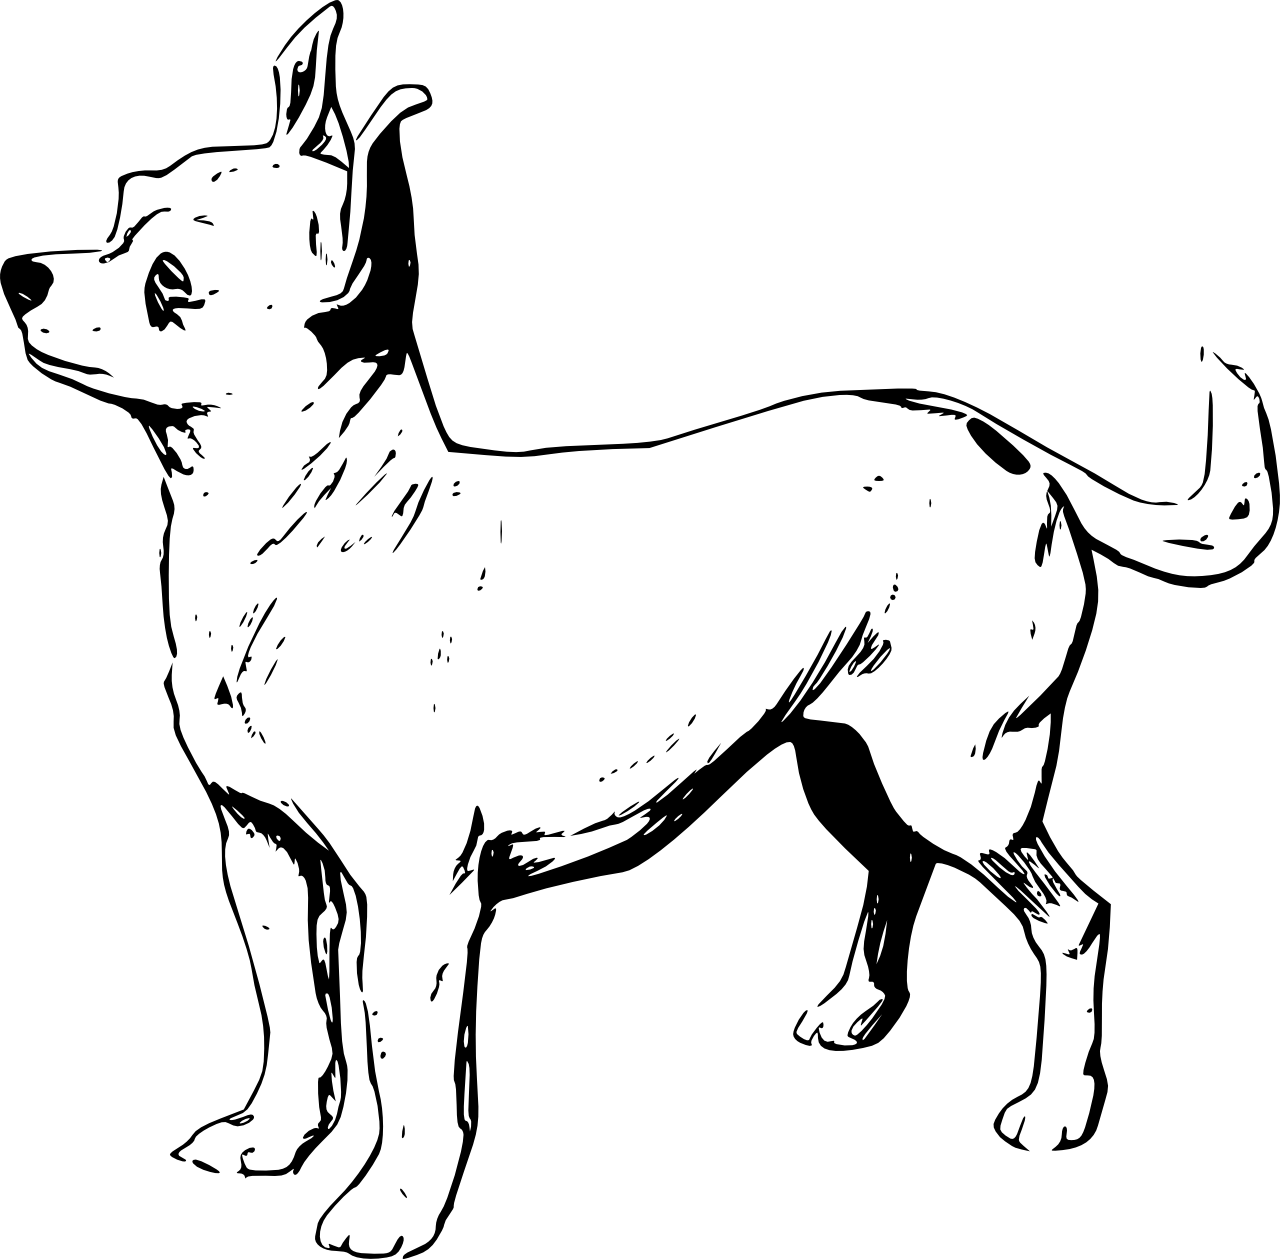 Library Of Dog Butt Royalty Free Library Files